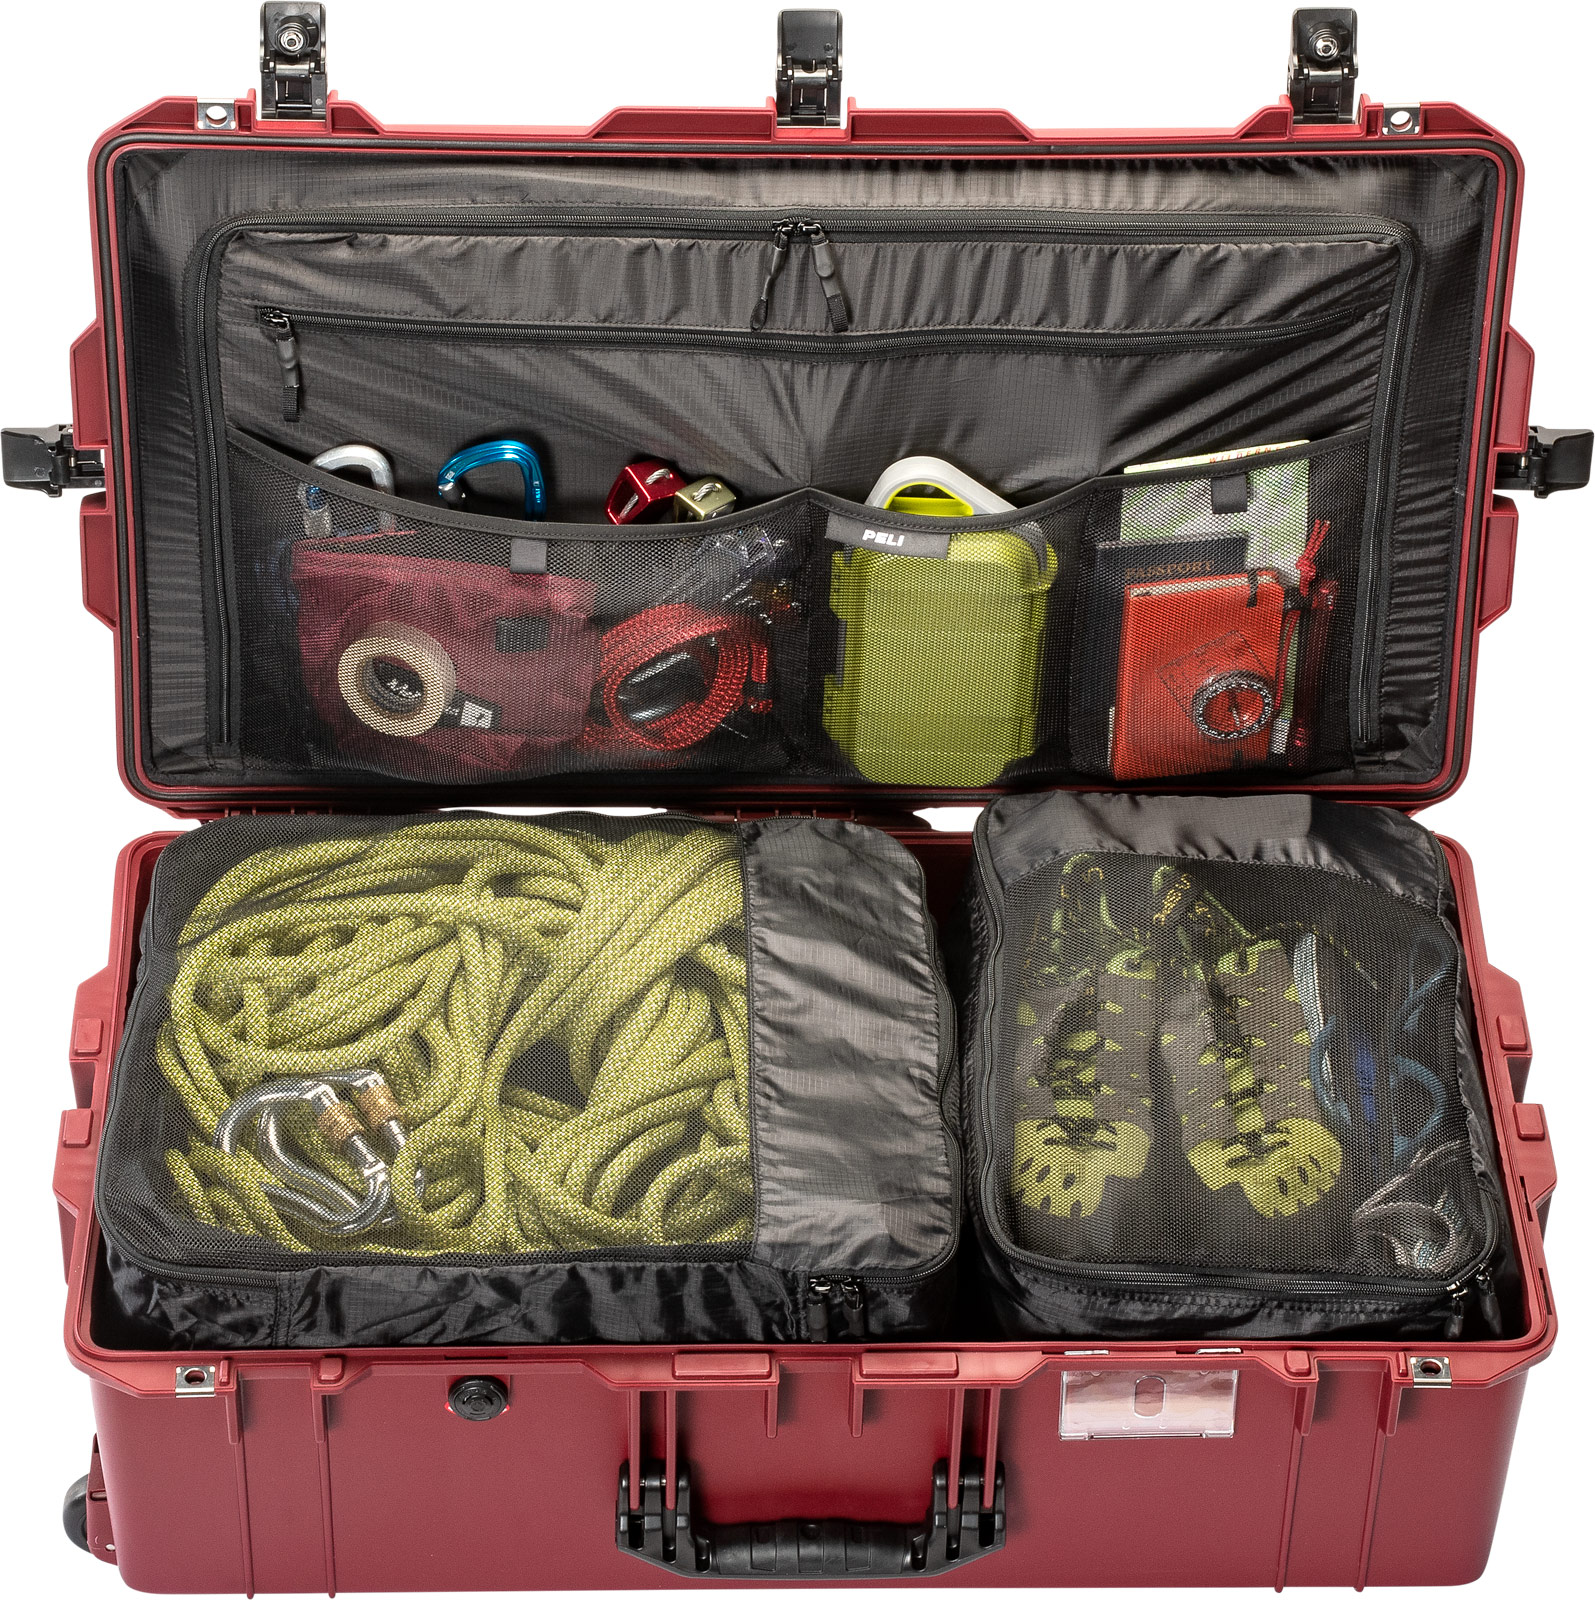 peli 1615 check in airline luggage cases